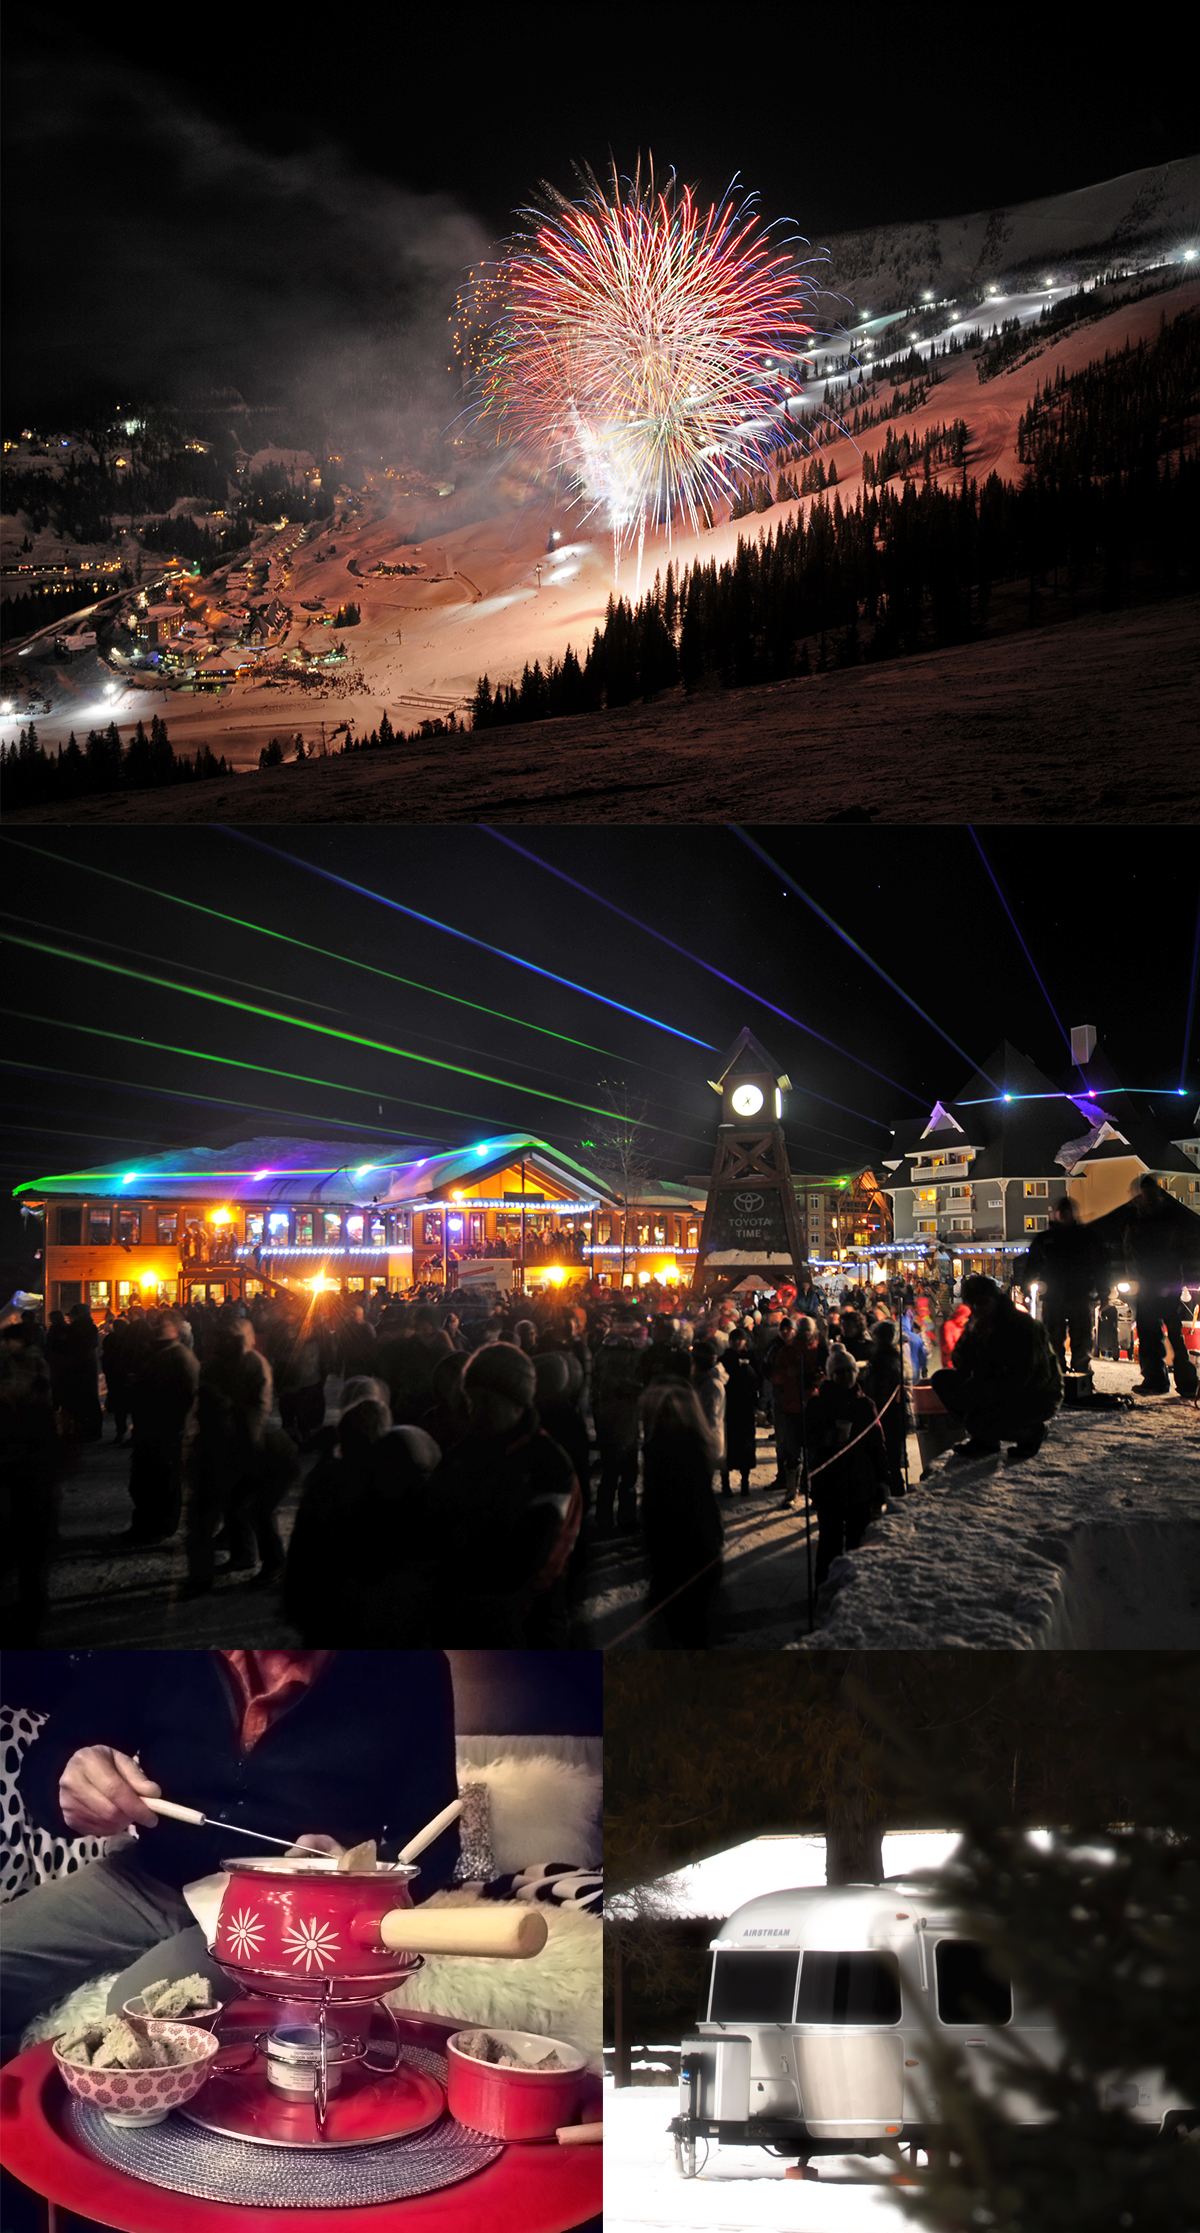 Fireworks and Lazer Show at Schweitzer Mountain Resort in Beautiful Idaho via J5MM.com